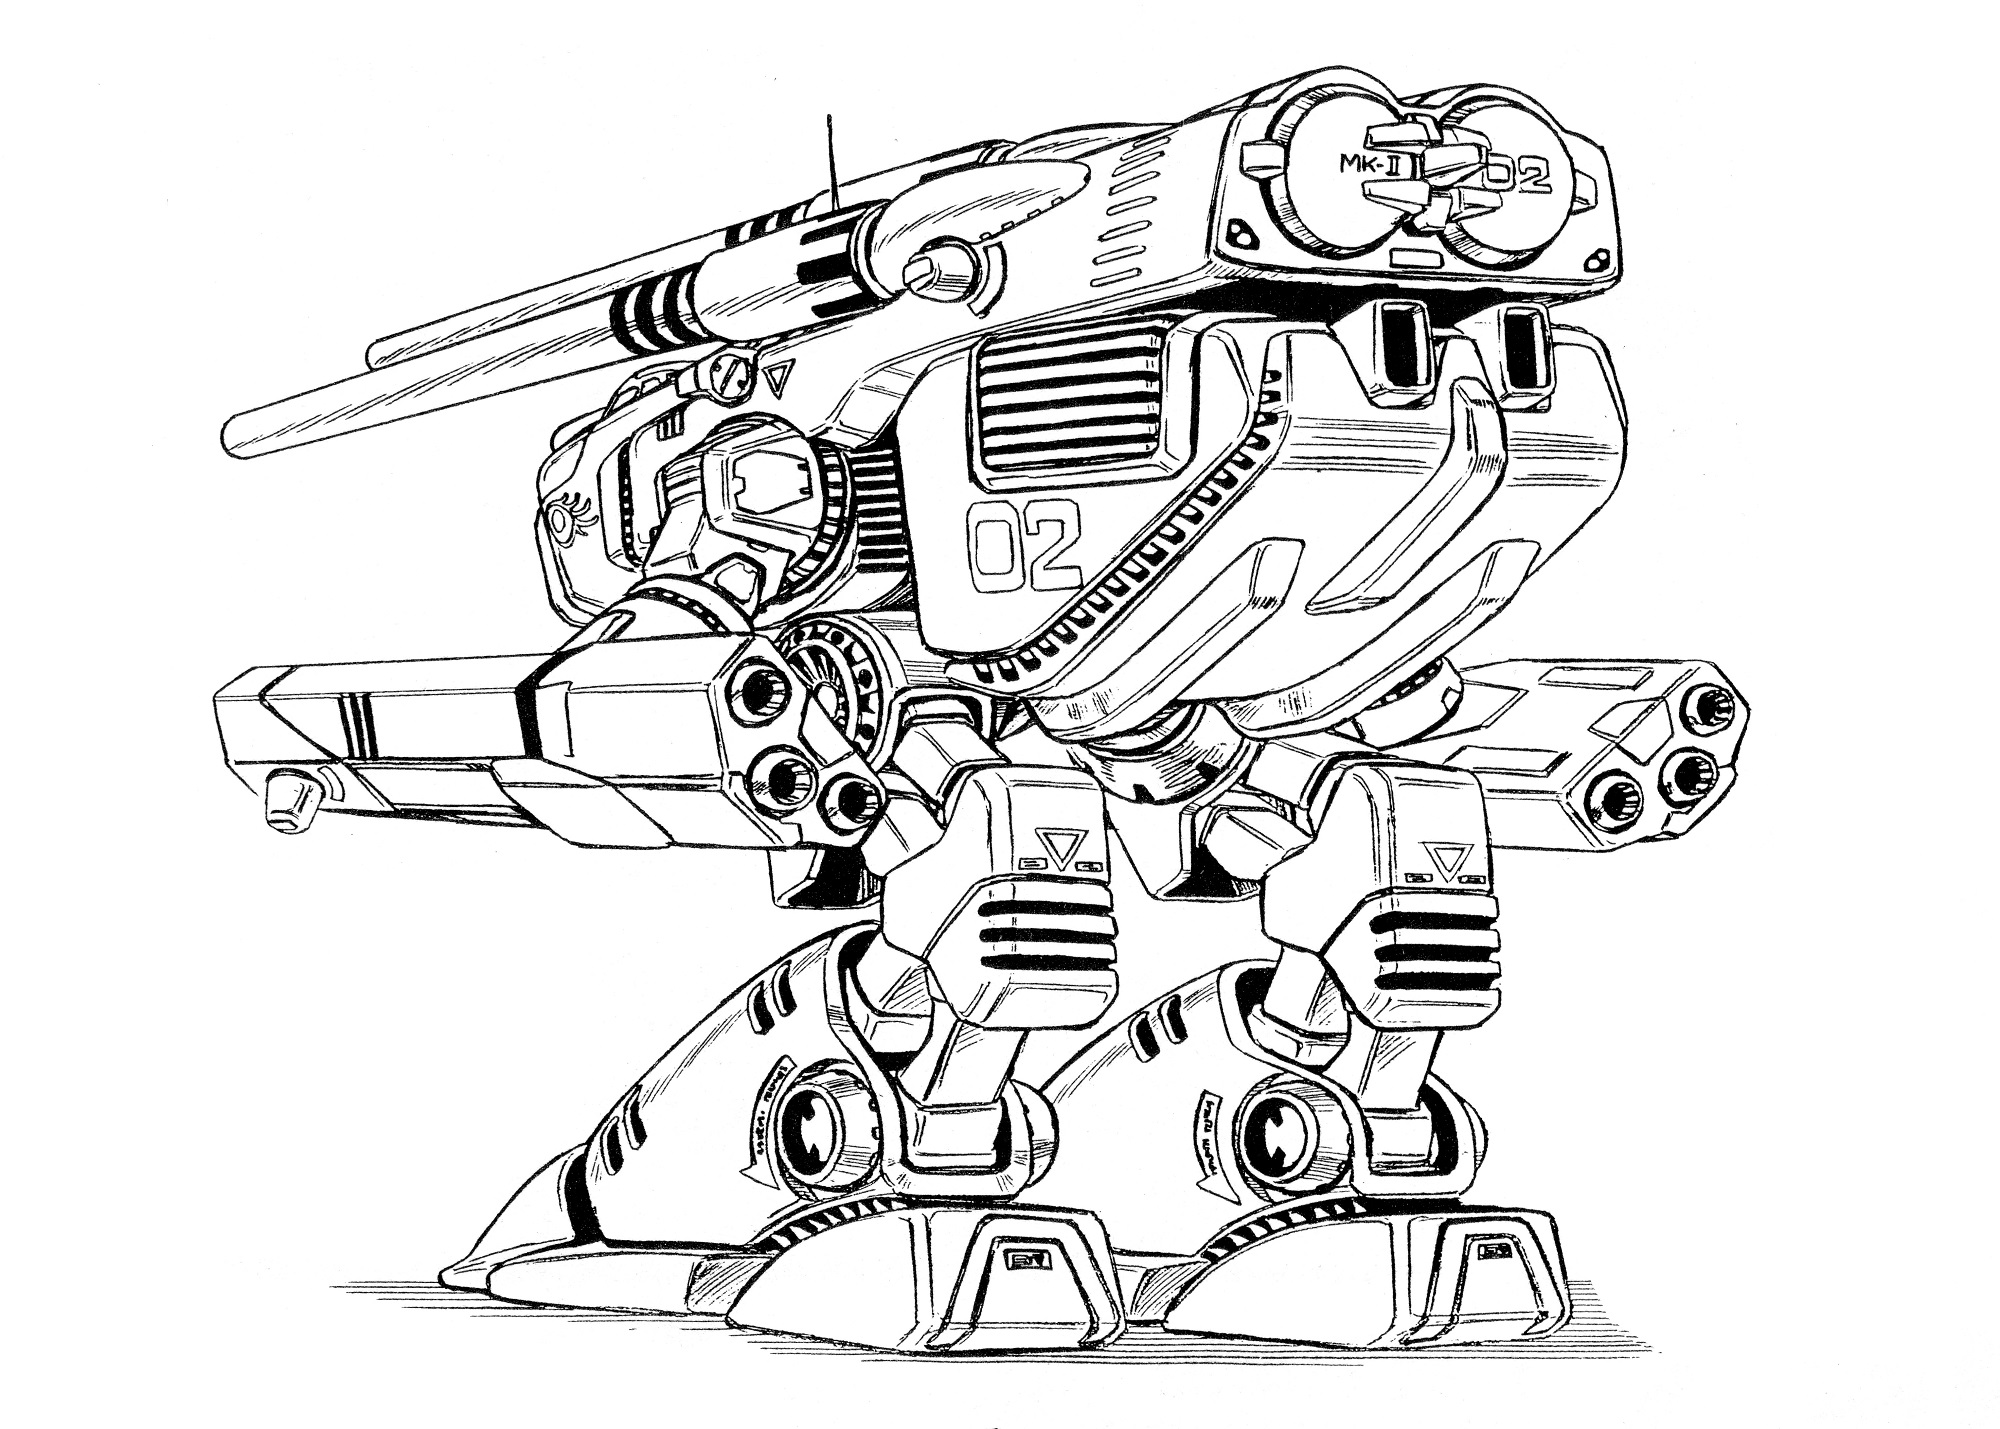 HWR-00-Mk II Monster Heavy Weapons Robot 11